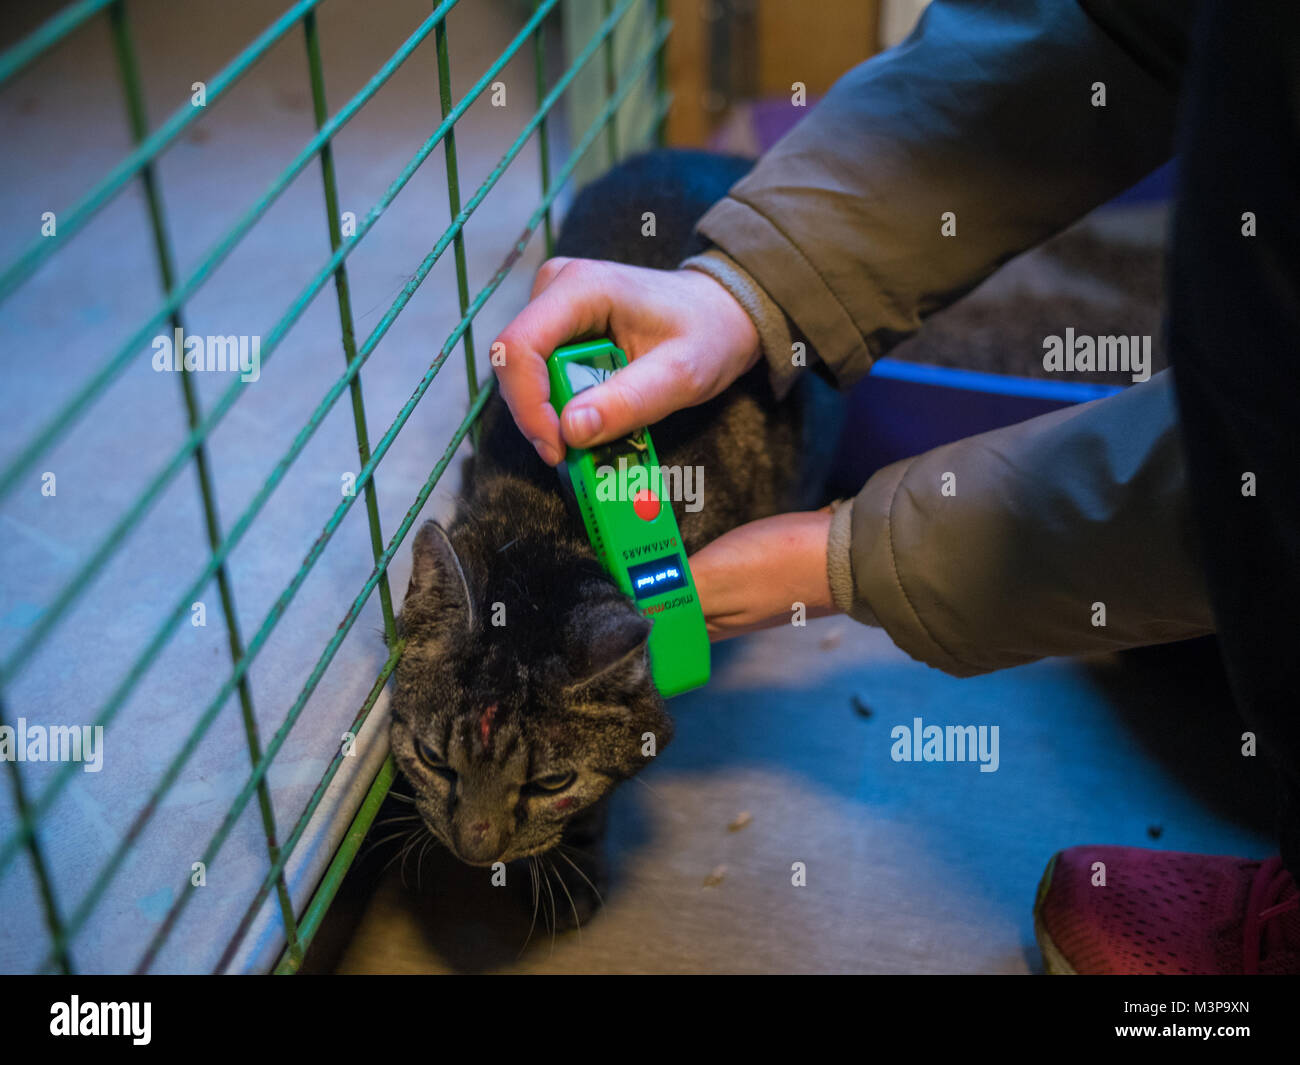 A Mistreated Feral Cat Captured By The Animal Rescue In Sweden Stock